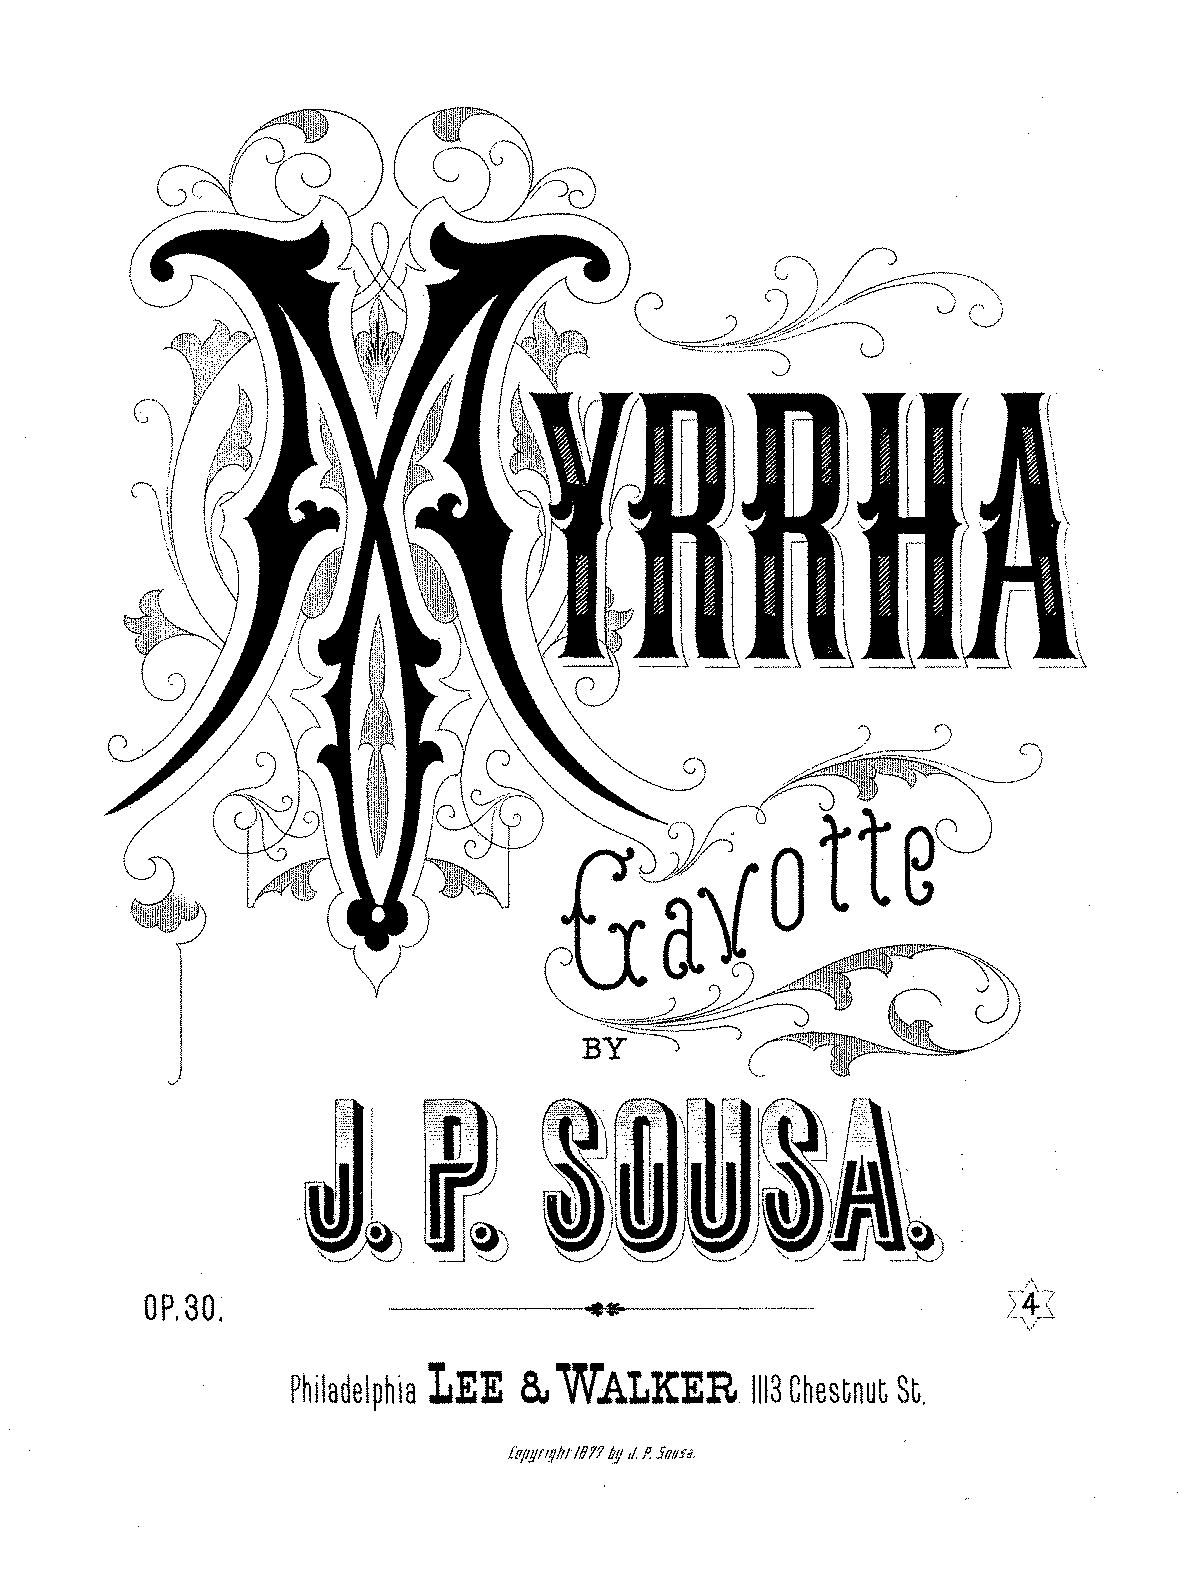 PMLP251903-John Philip Sousa - Myrrha Gavotte (piano reduction).pdf